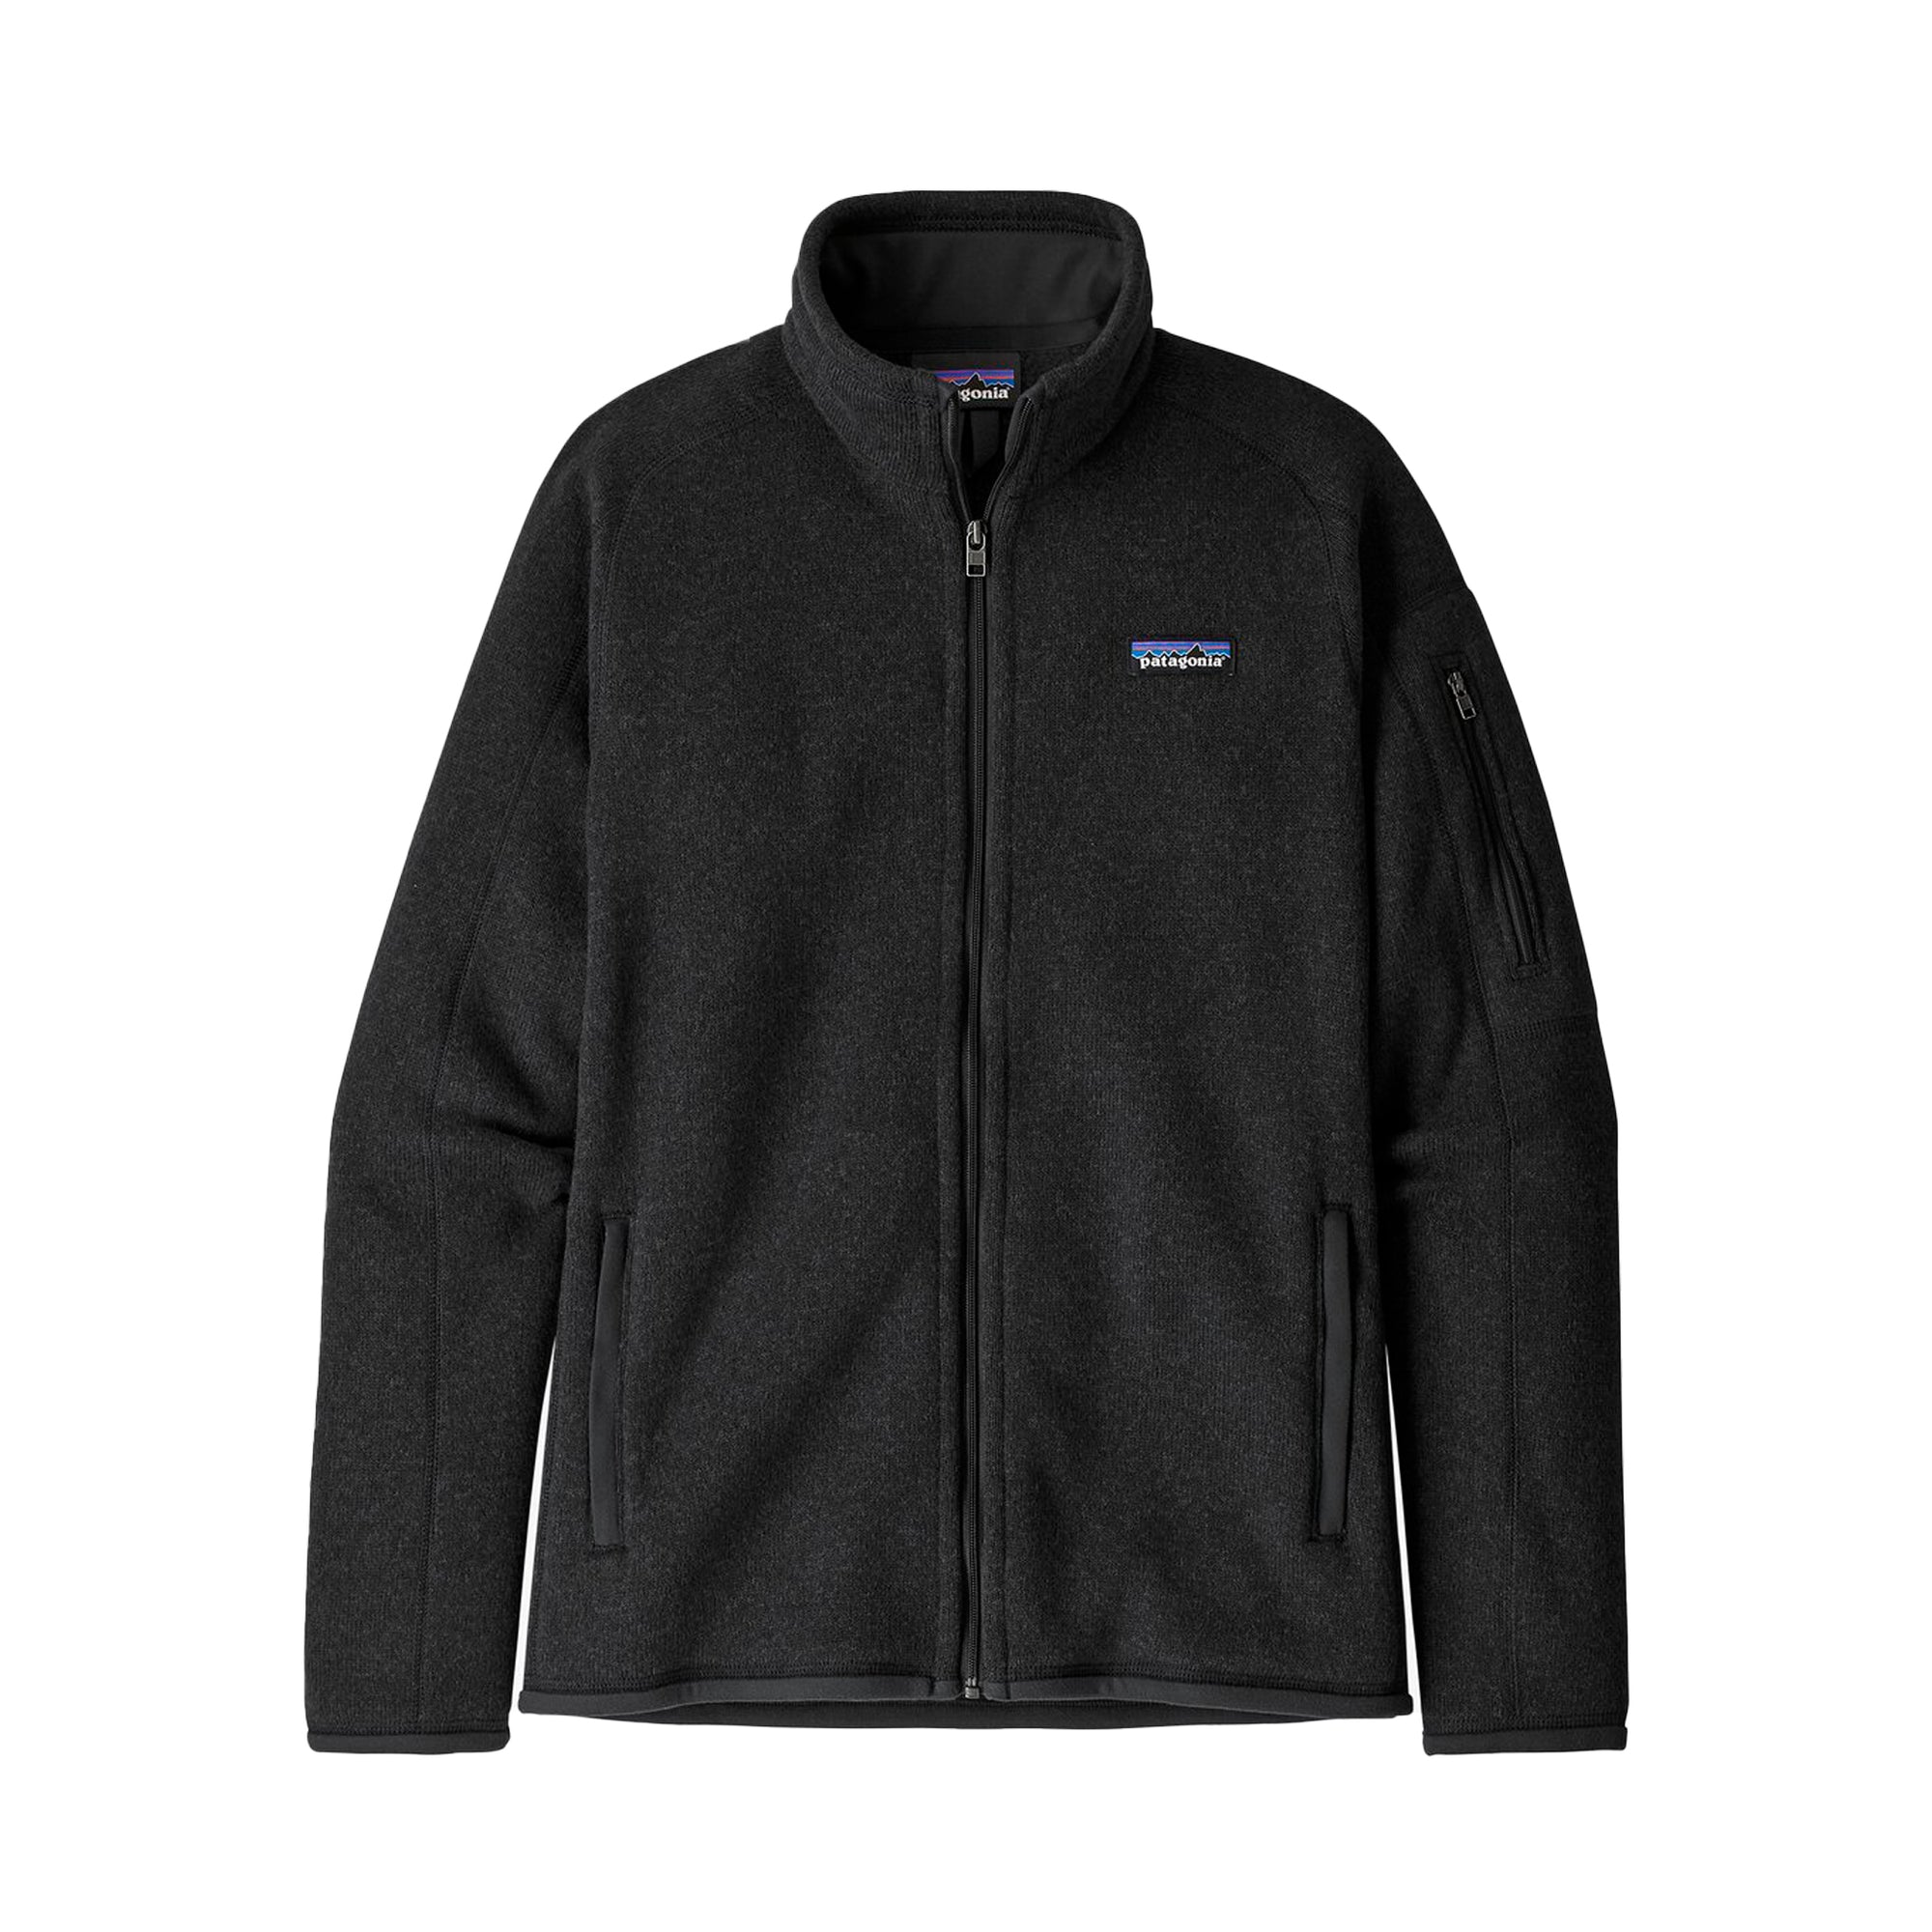 Patagonia Womens Better Sweater Jacket: Black - The Union Project